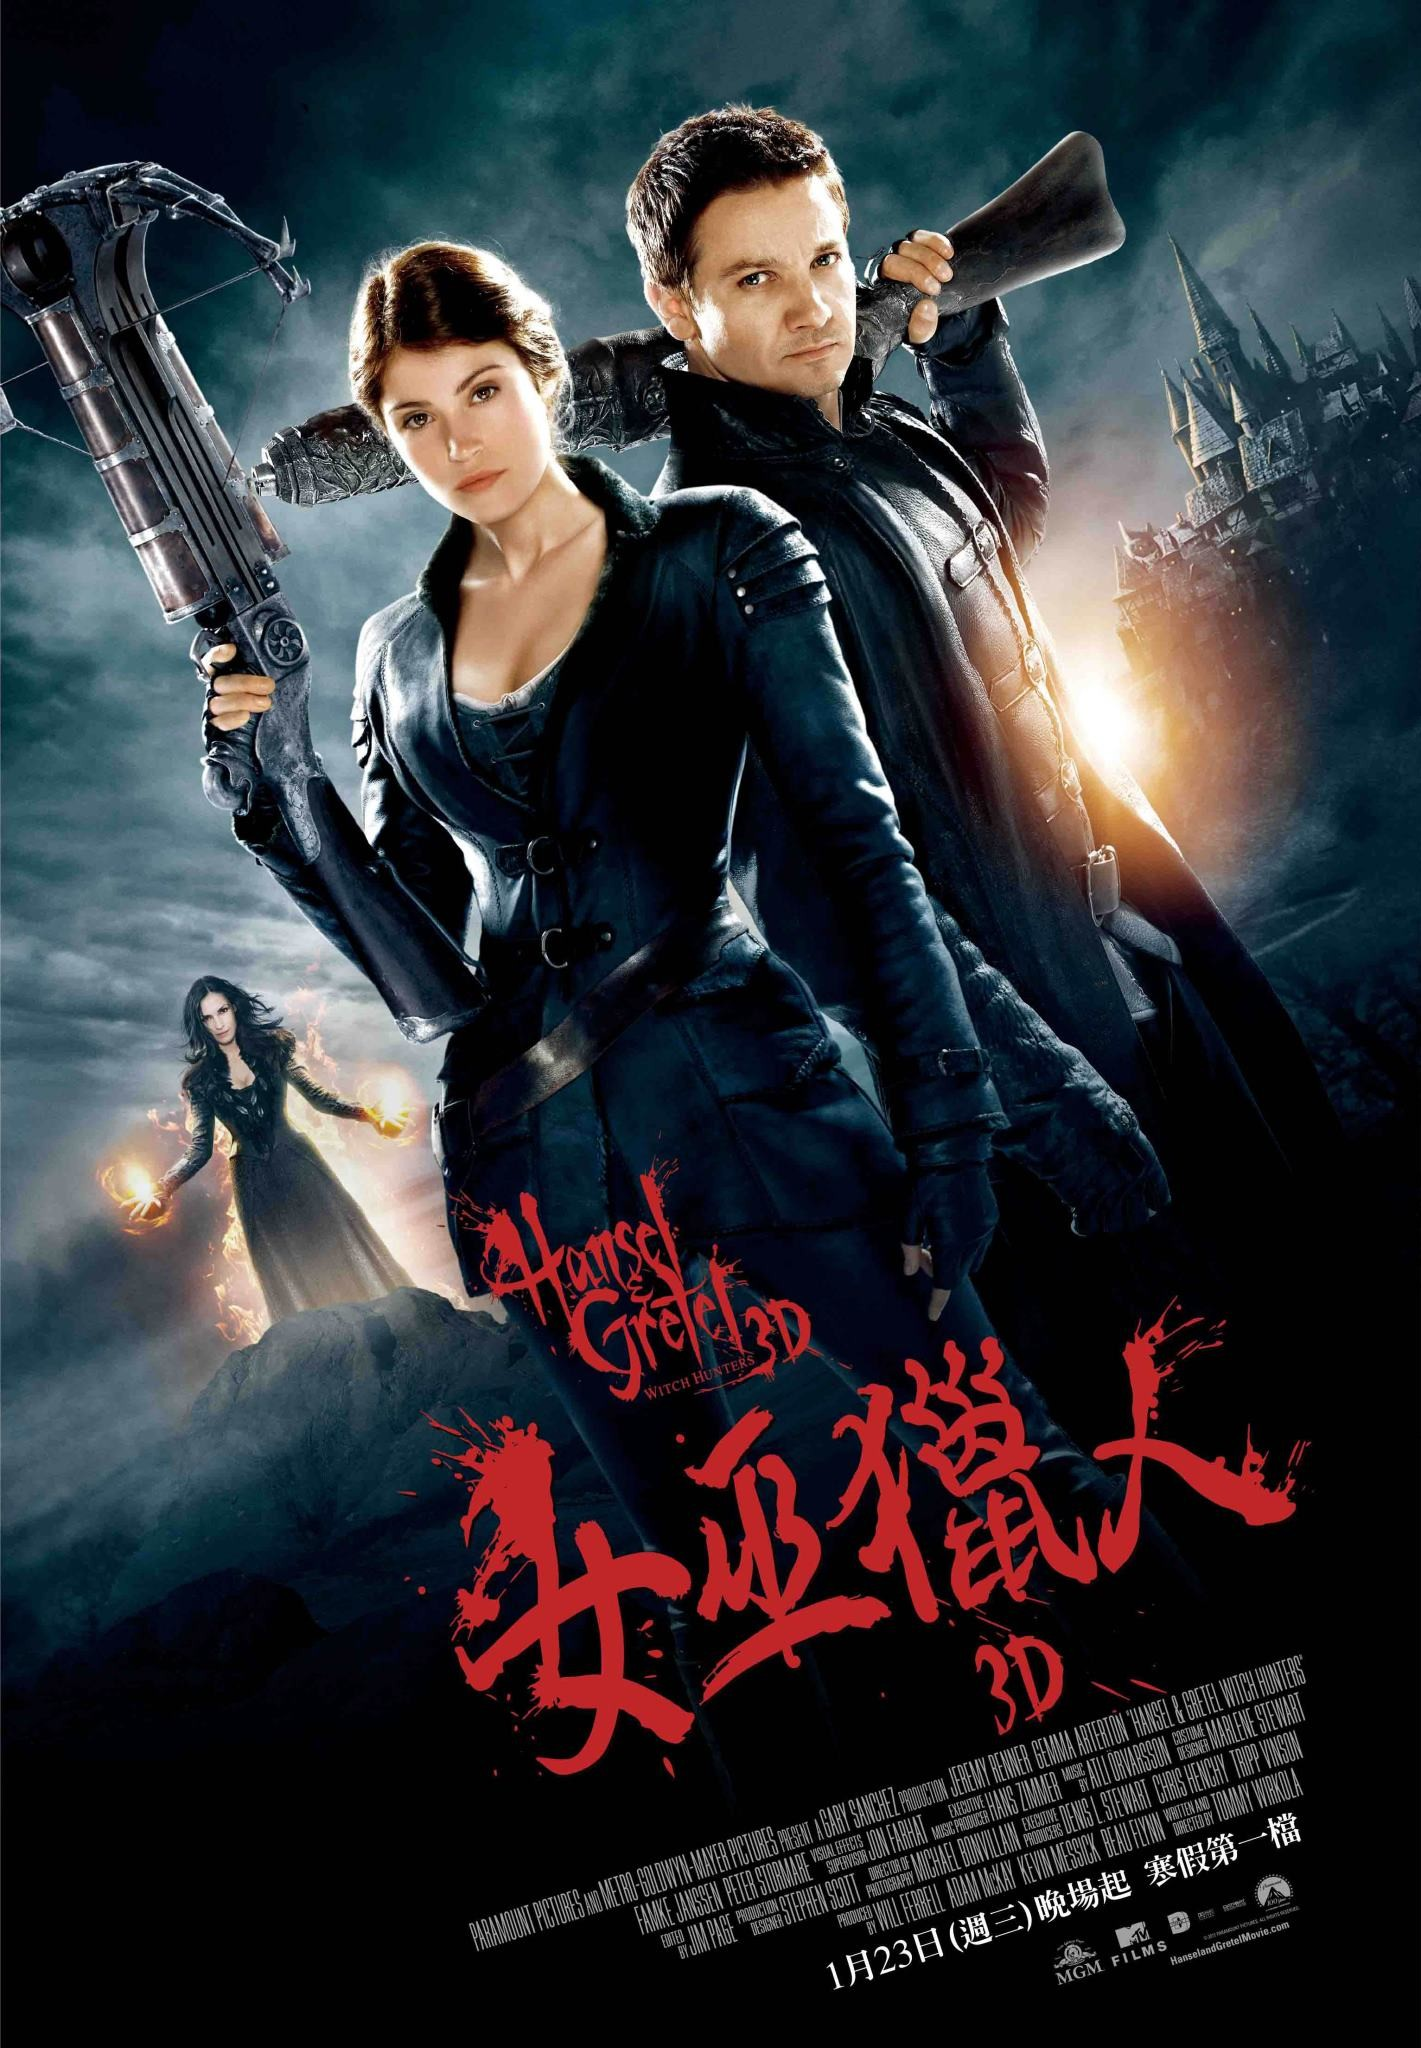 Hansel & Gretel Witch Hunters - Poster - 003